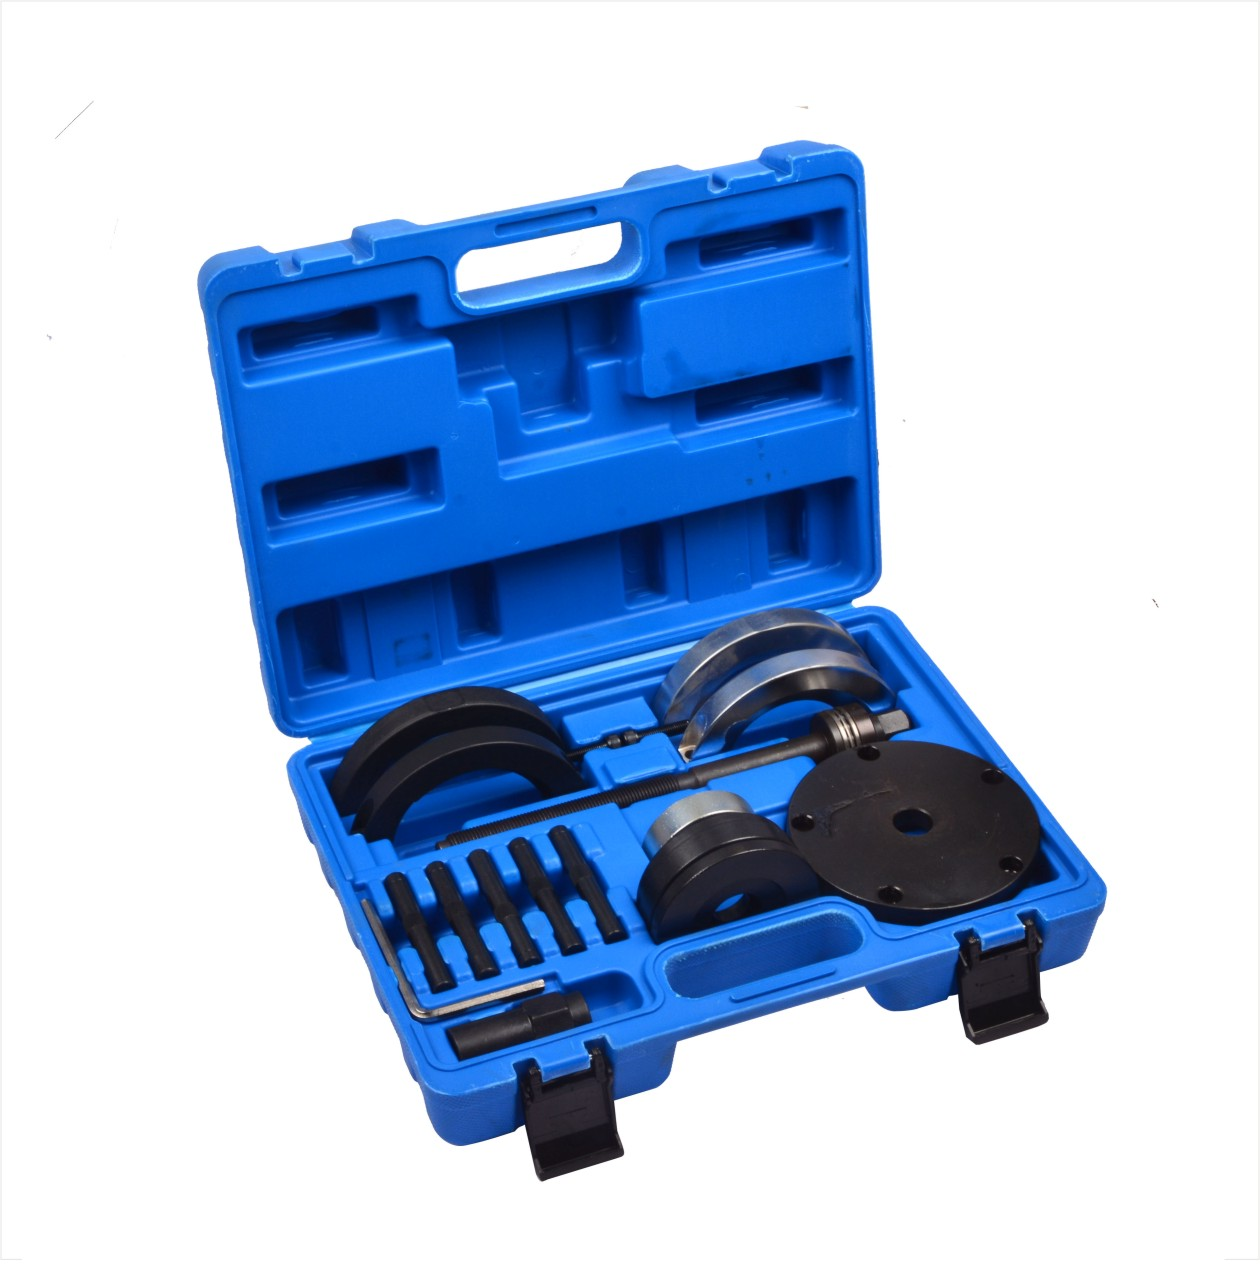 New High Quality 85 mm Front Wheel Bearing Tools For VW T5 Touareg Transporter Multivan With 16 Rims Wheel Hub Removal Tool high quality odm 96teeth xh timing wheel